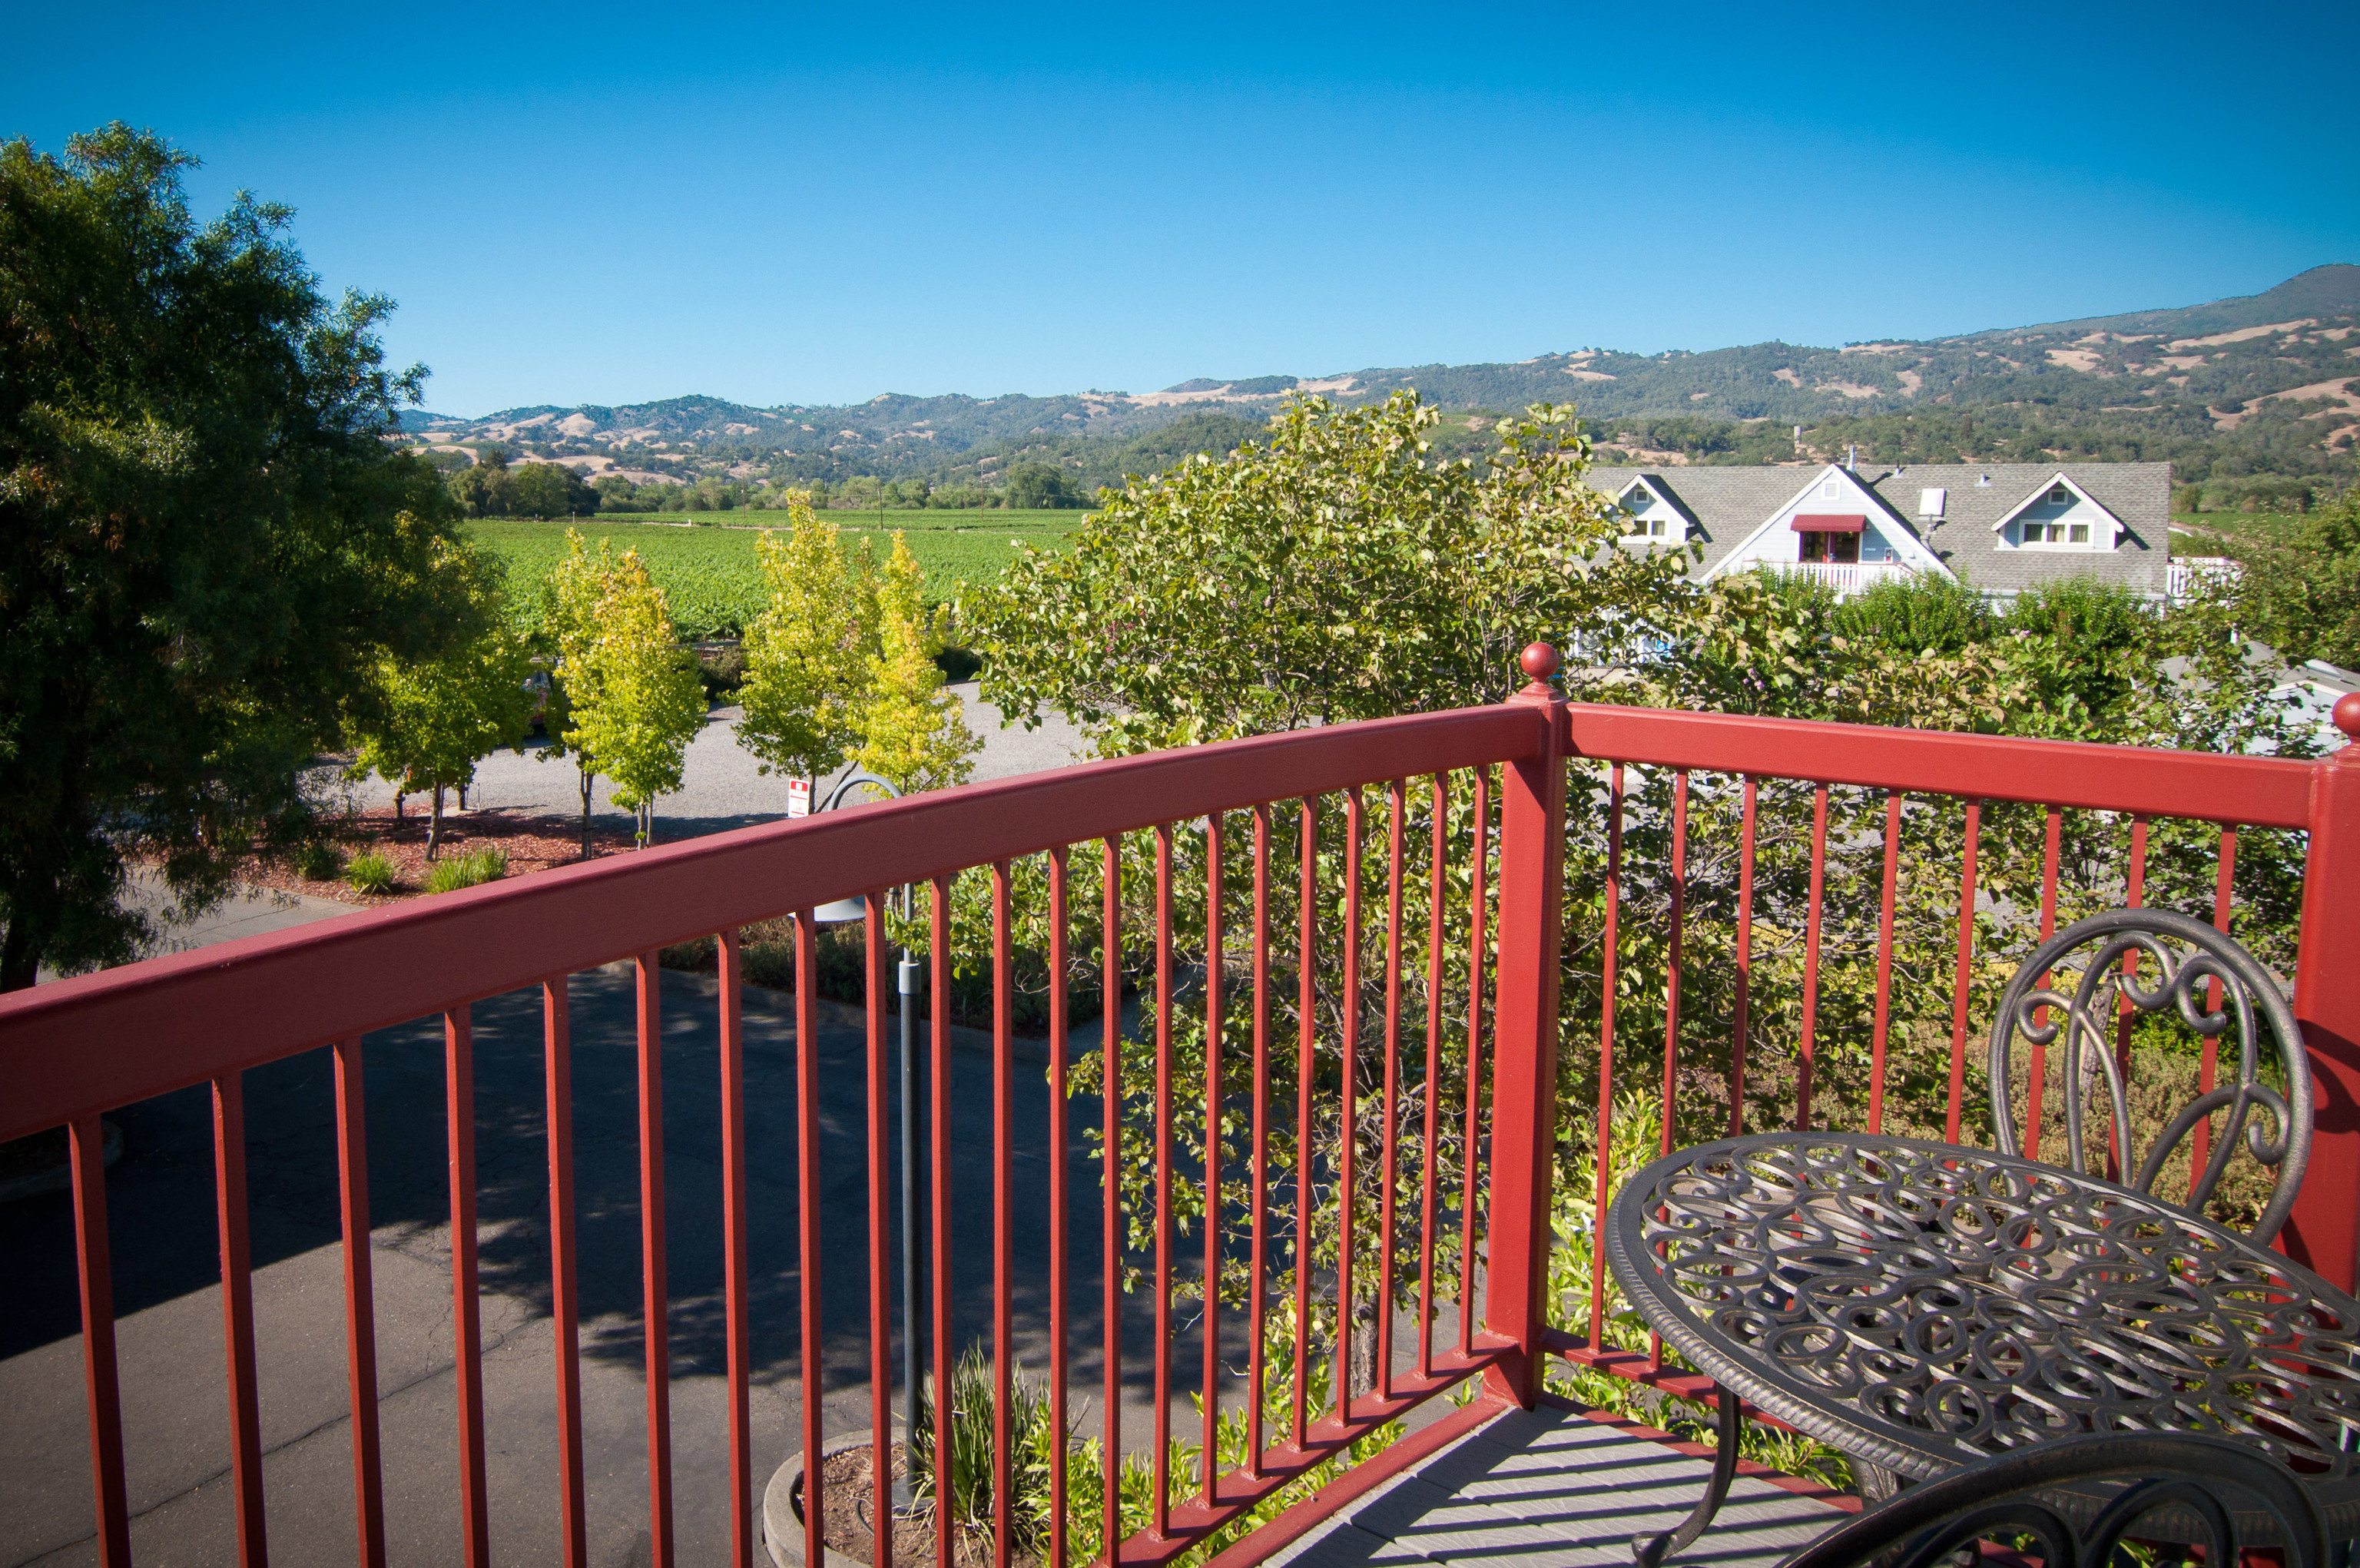 Fence tree sky building red Deck park porch railing colorful